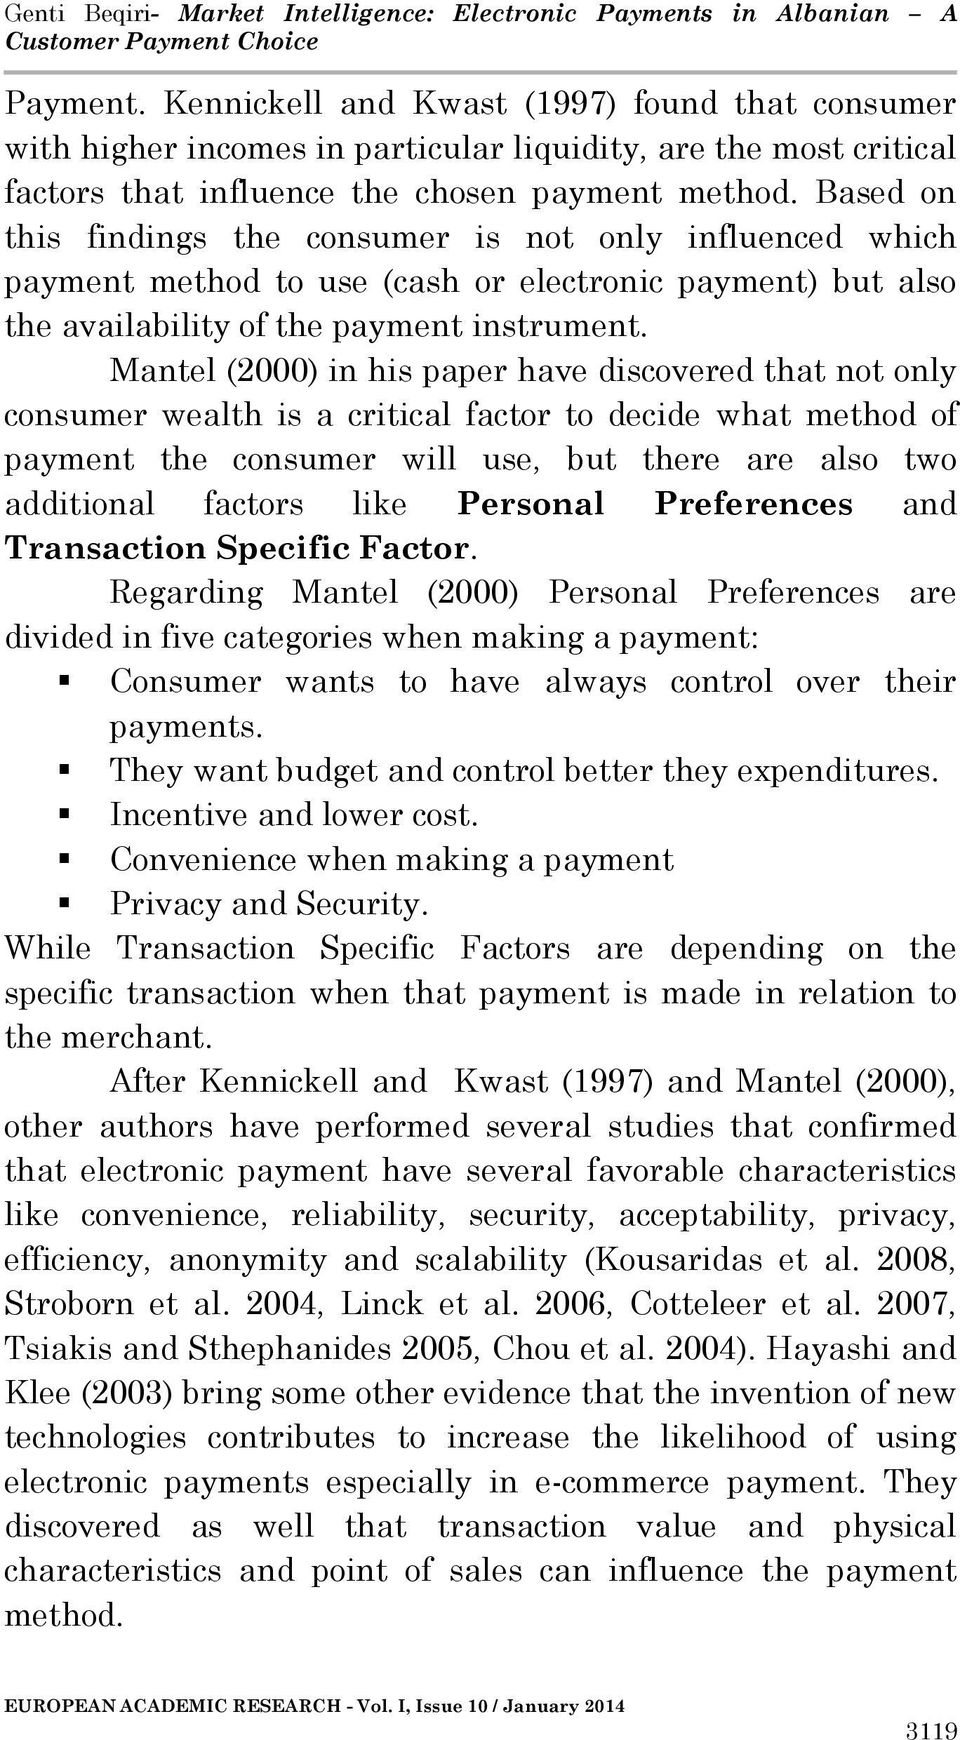 ... Intelligence Electronic Payments in Albanian A Customer Payment Choice